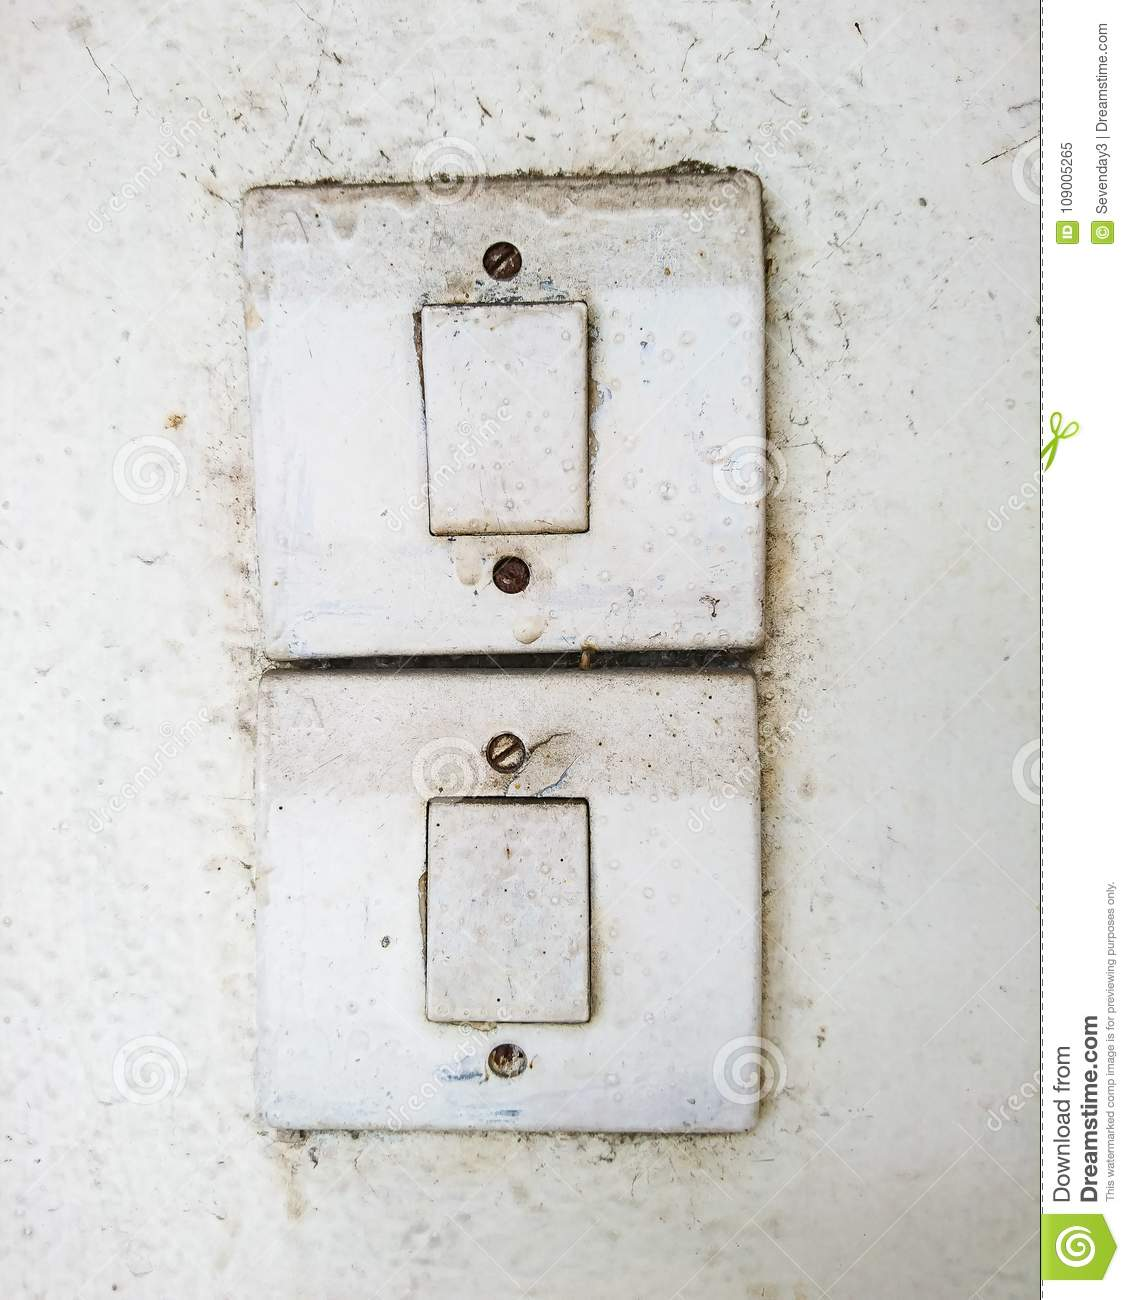 Dirty Old Switches On The White Wall Stock Image - Image of wall ...